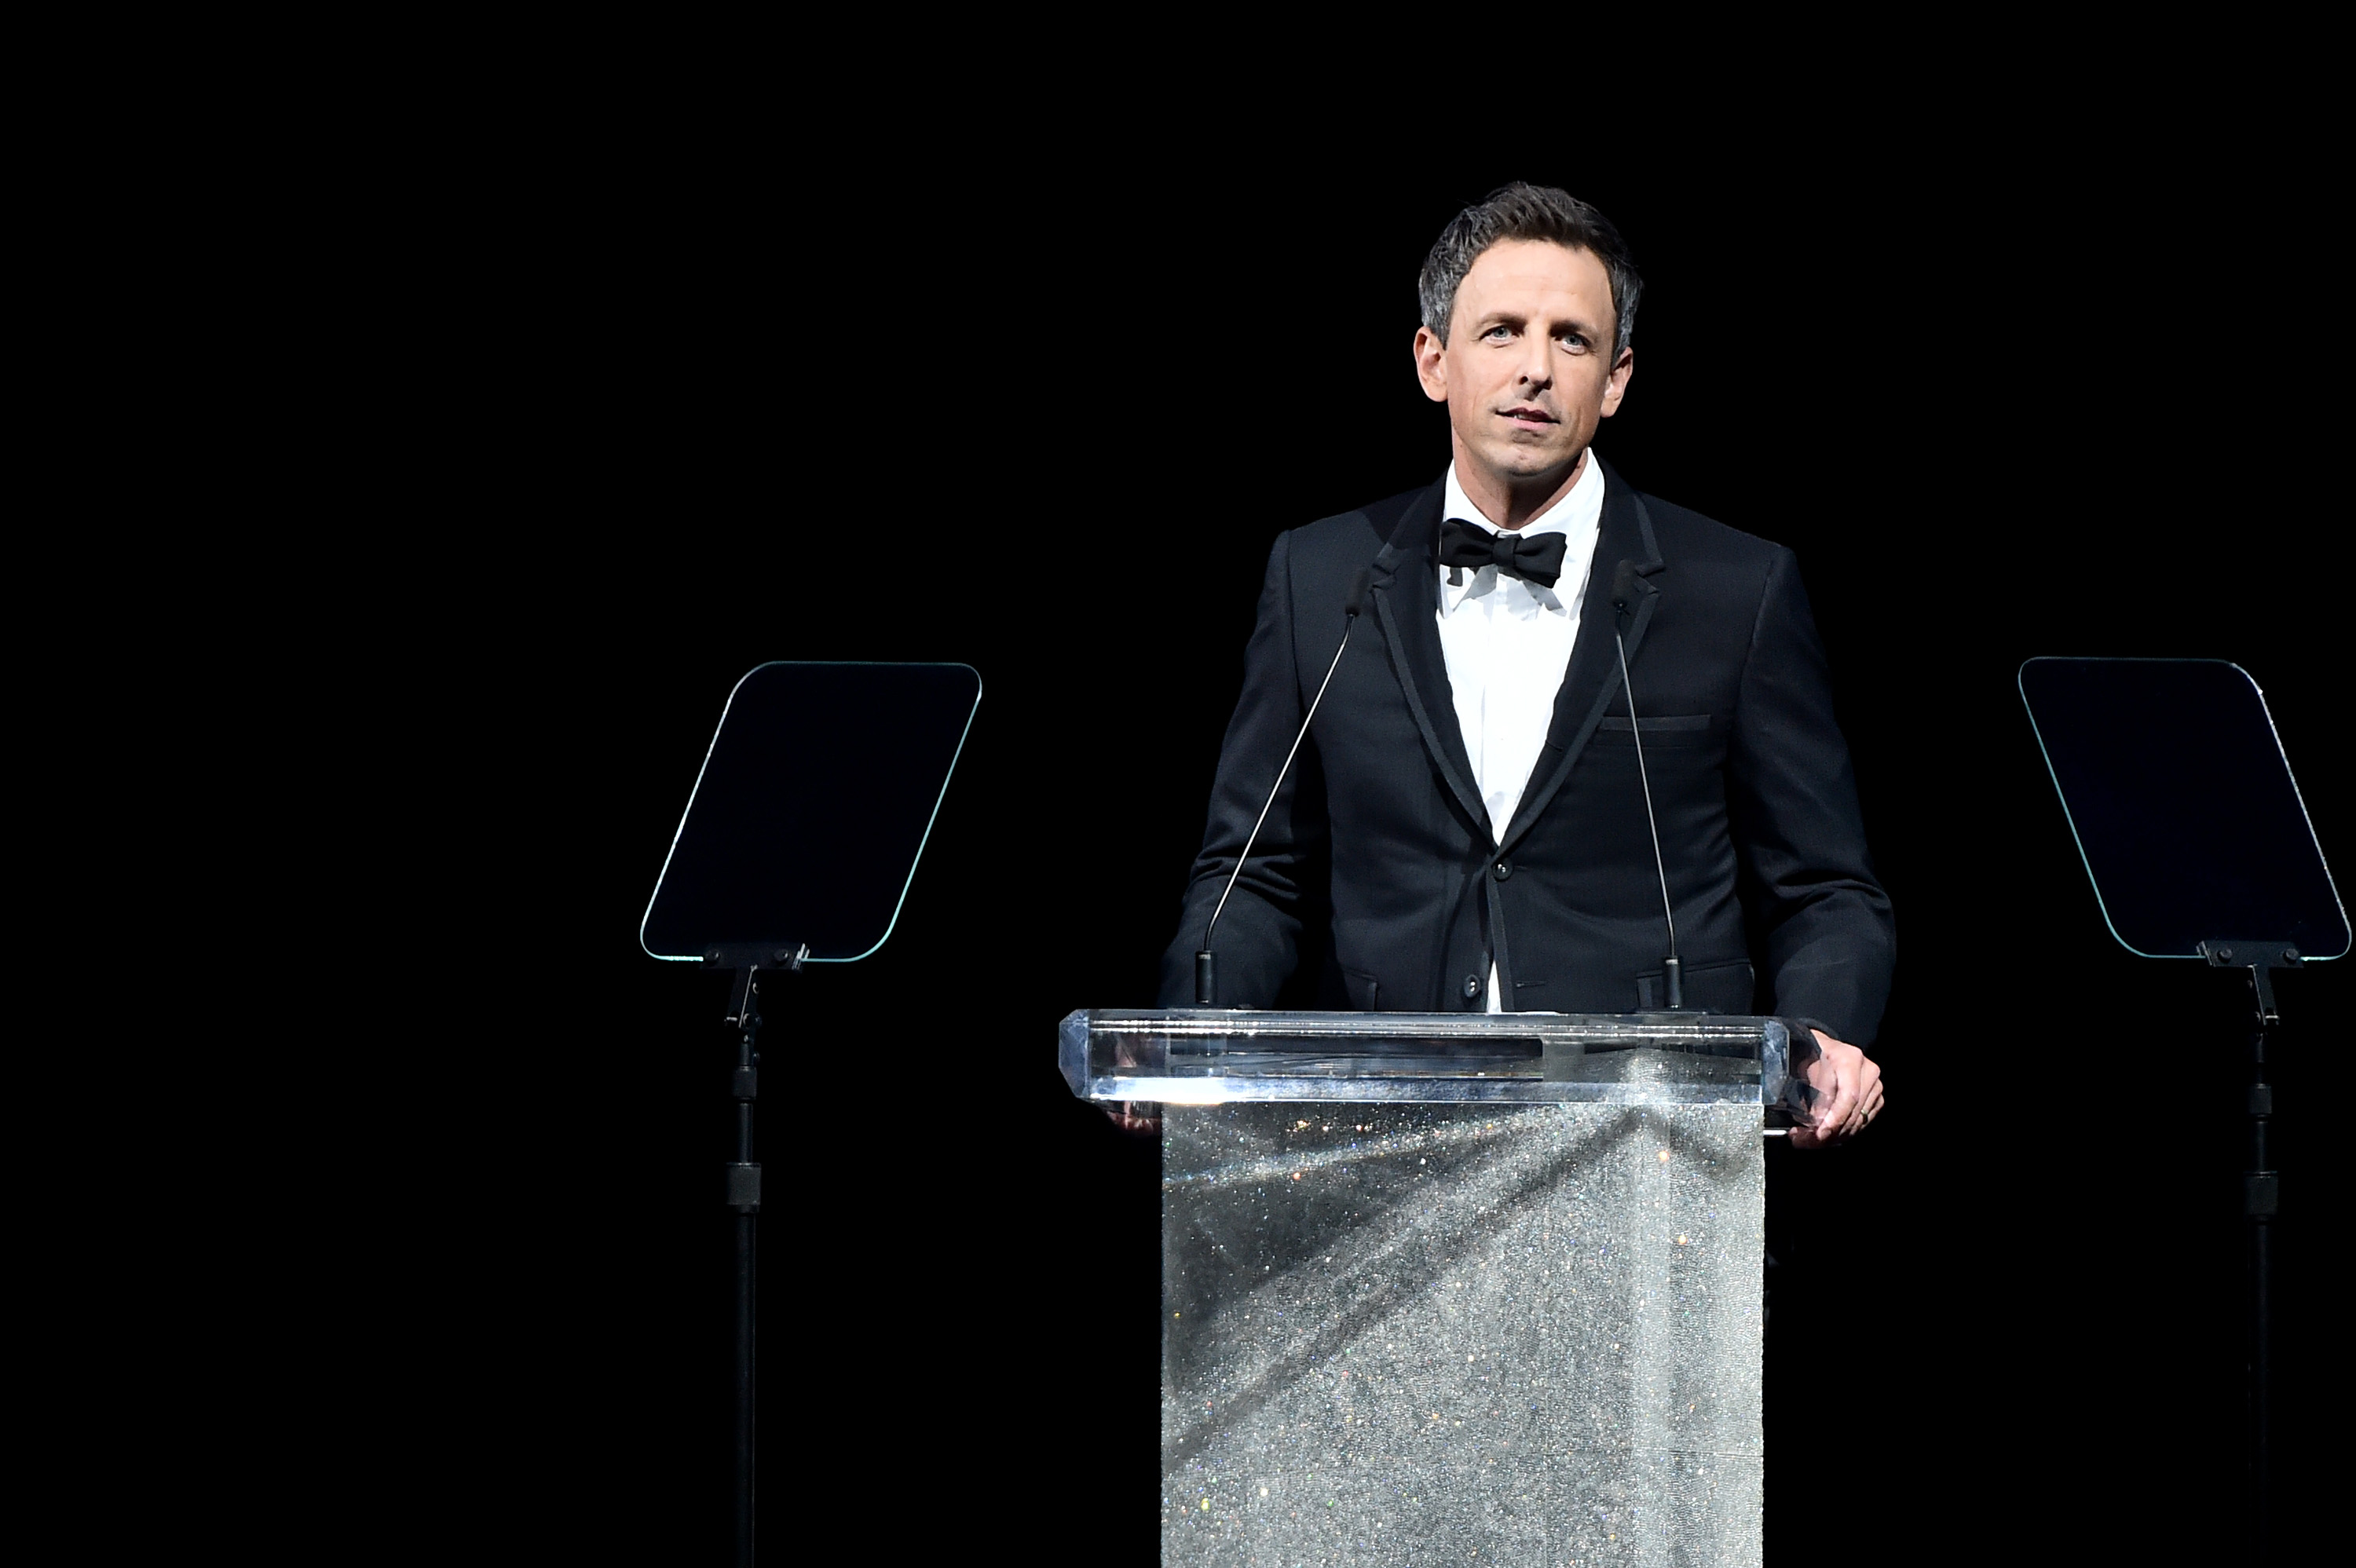 NEW YORK, NY - JUNE 05:  Host Seth Meyers speaks onstage during the 2017 CFDA Fashion Awards at Hammerstein Ballroom on June 5, 2017 in New York City.  (Photo by Theo Wargo/Getty Images)